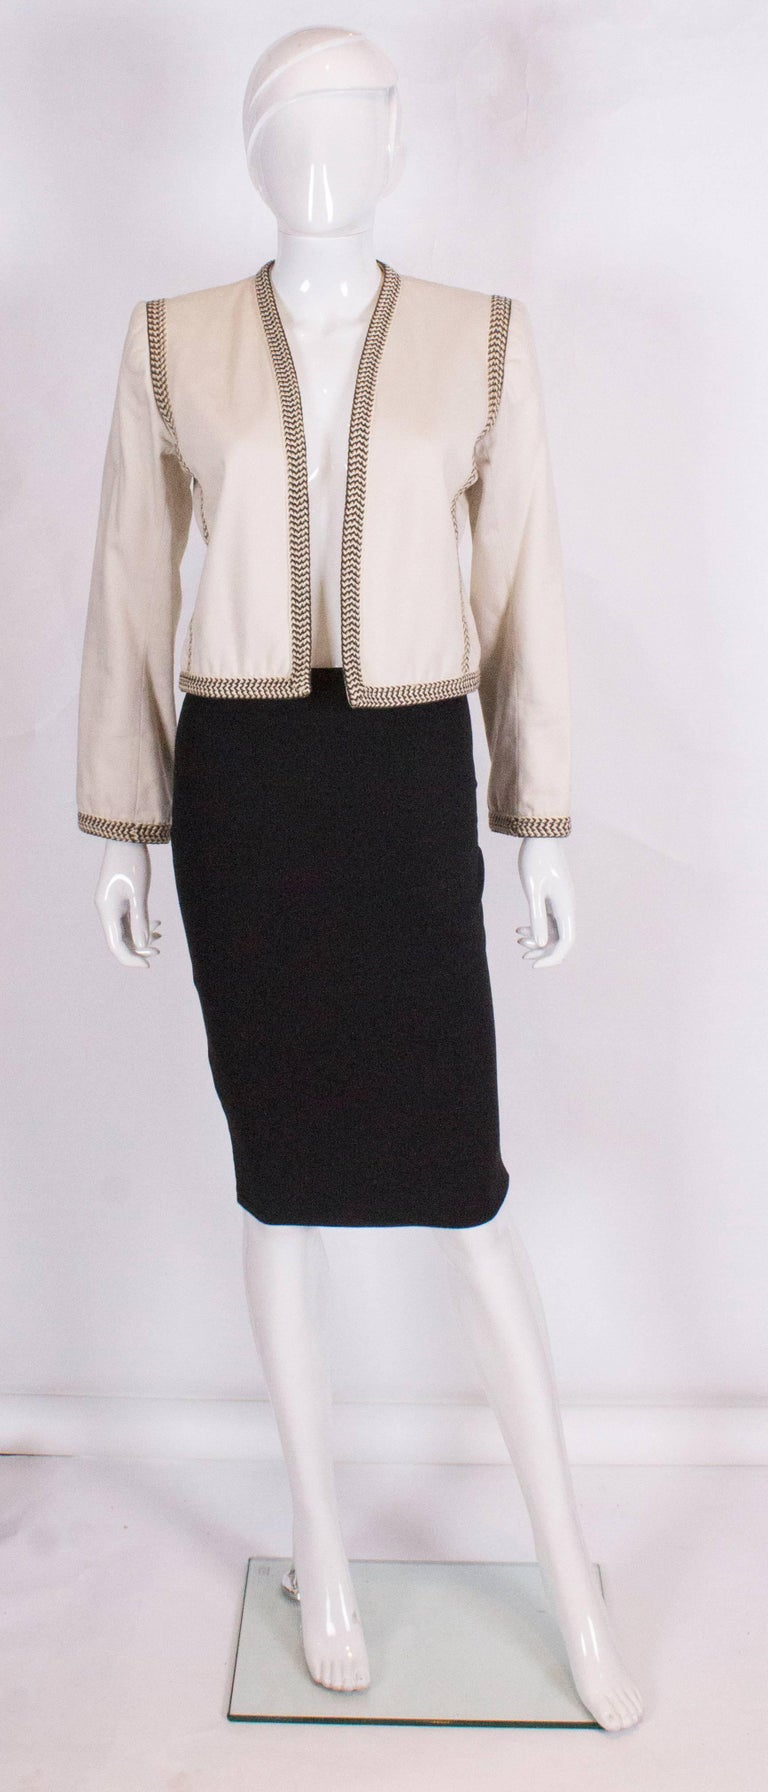 A chic jacket by Yves Saint Laurent Rive Gauche . The jacket is lined in cotton and has a braid trim at the neckline, cuffs and down the front and back.It has the original shoulder pads.